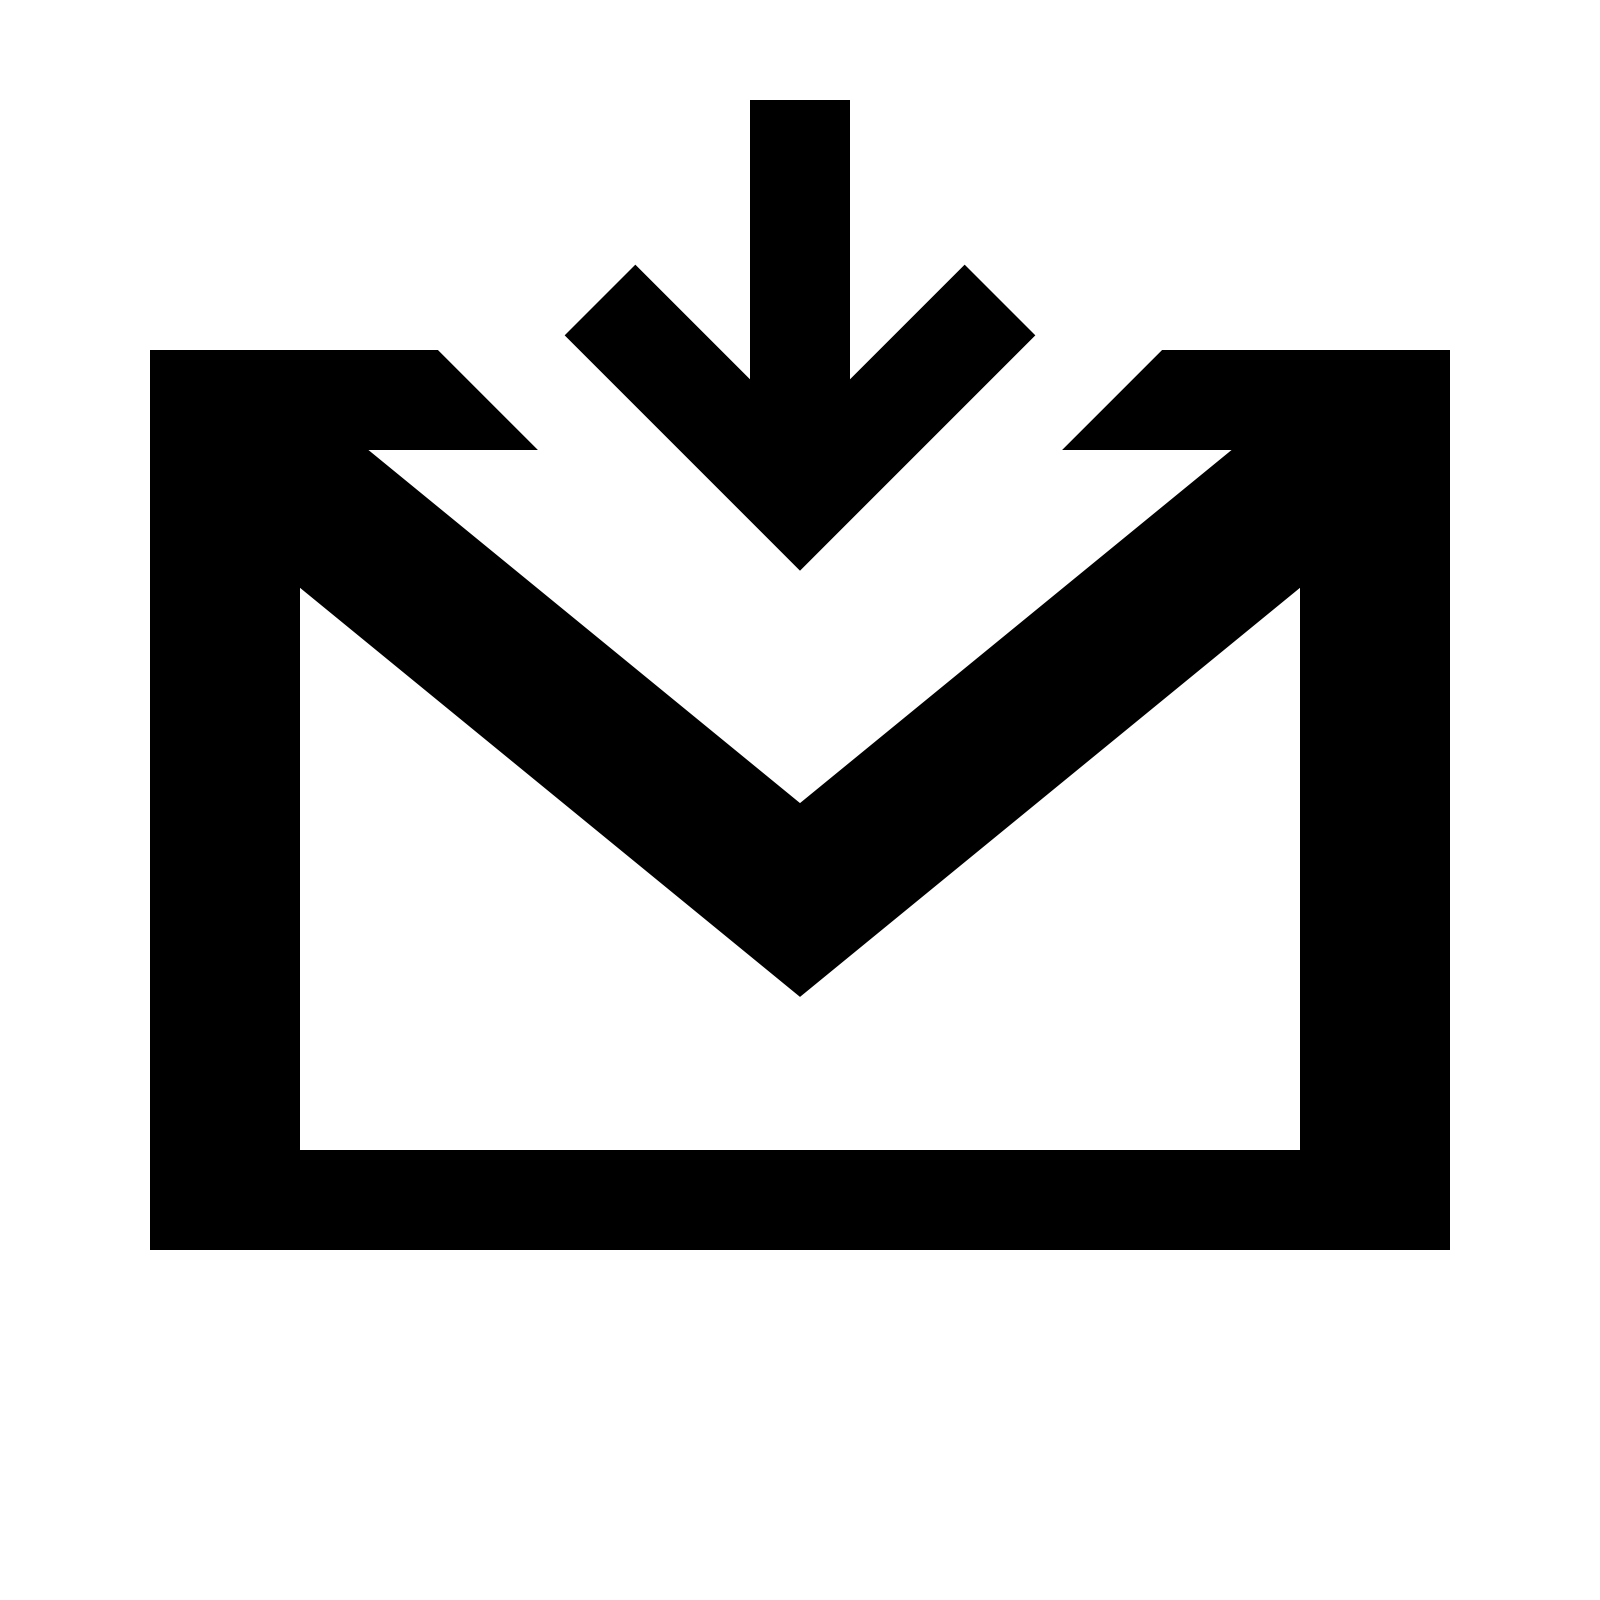 Vector Icon Gmail image #38491